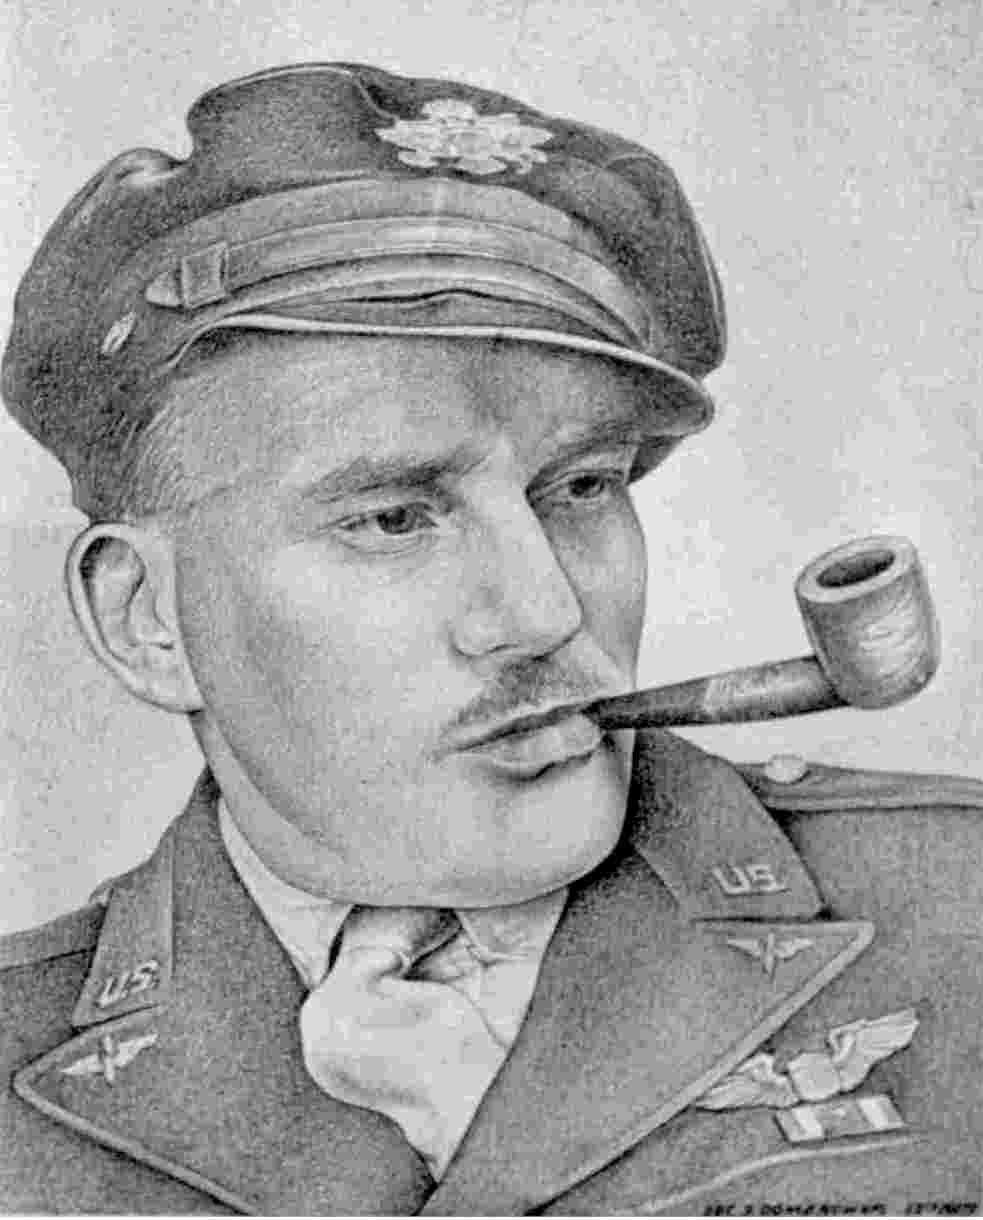 Charcoal sketch of Haun by Sgt. S. Dombrowski, 12th Squadron Photo Specialist